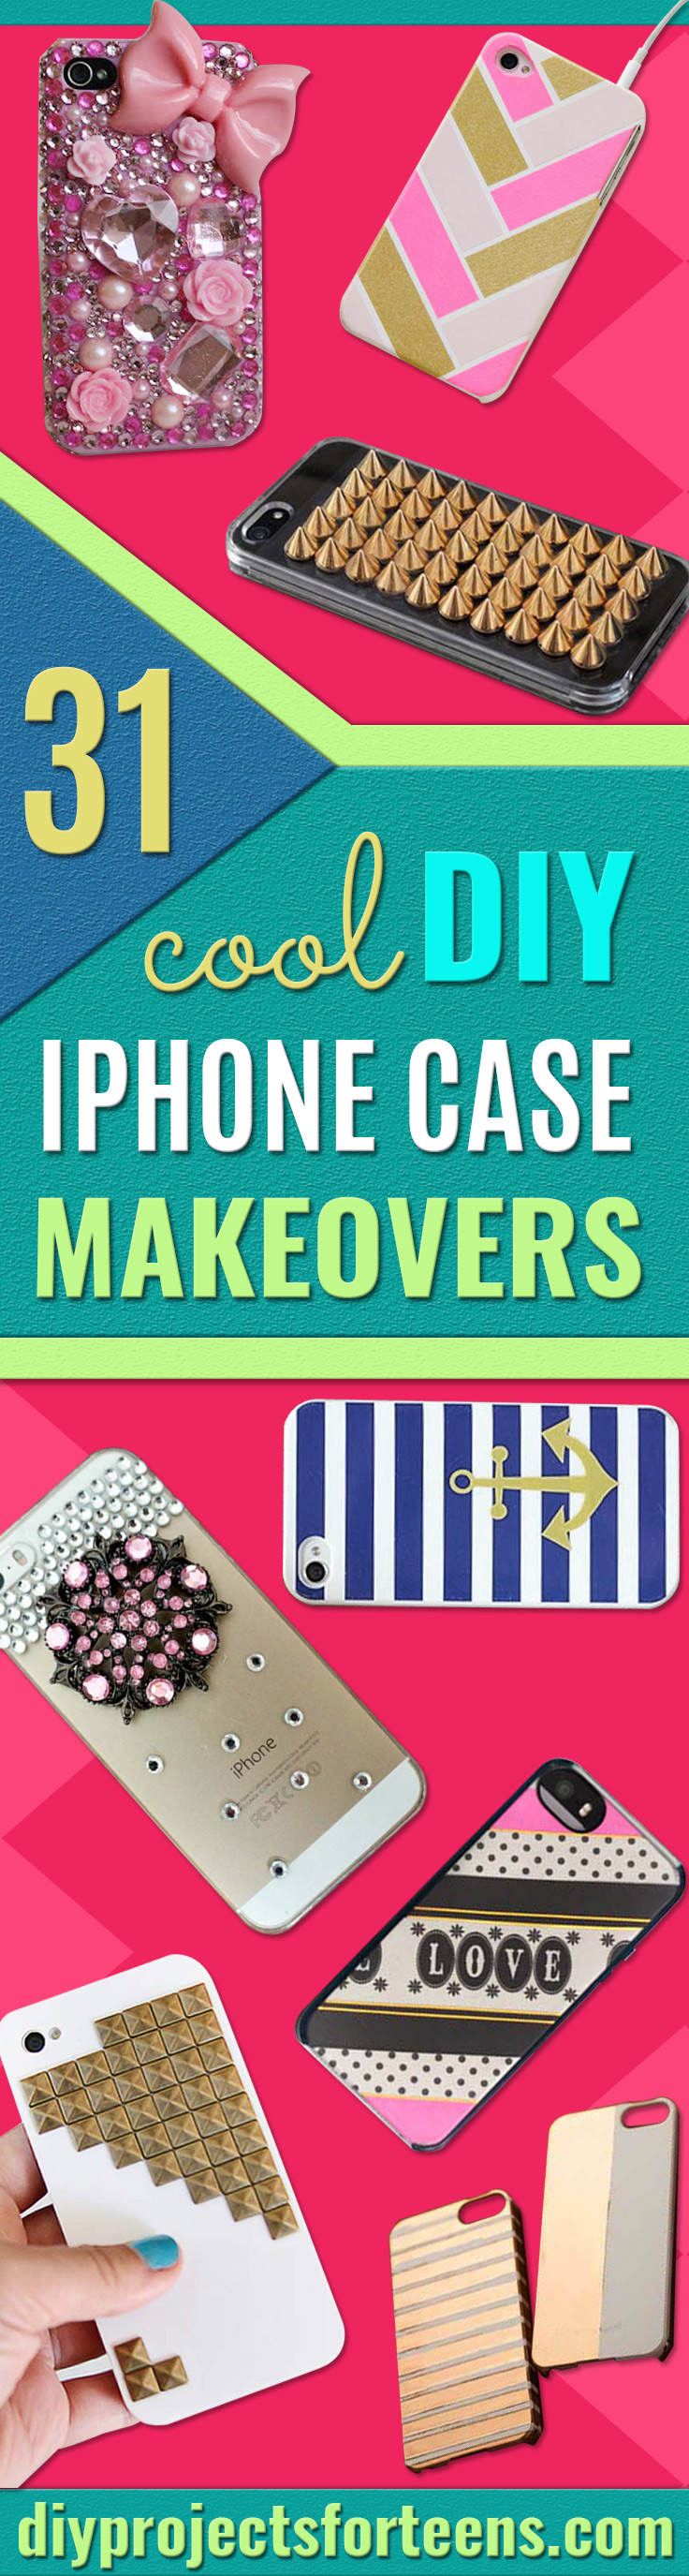 DIY iPhone Case Makeovers  - Easy DIY Projects and Handmade Crafts Tutorial Ideas You Can Make To Decorate Your Phone With Glitter, Nail Polish, Sharpie, Paint, Bling, Printables and Sewing Patterns - Fun DIY Ideas for Women, Teens, Tweens and Kids